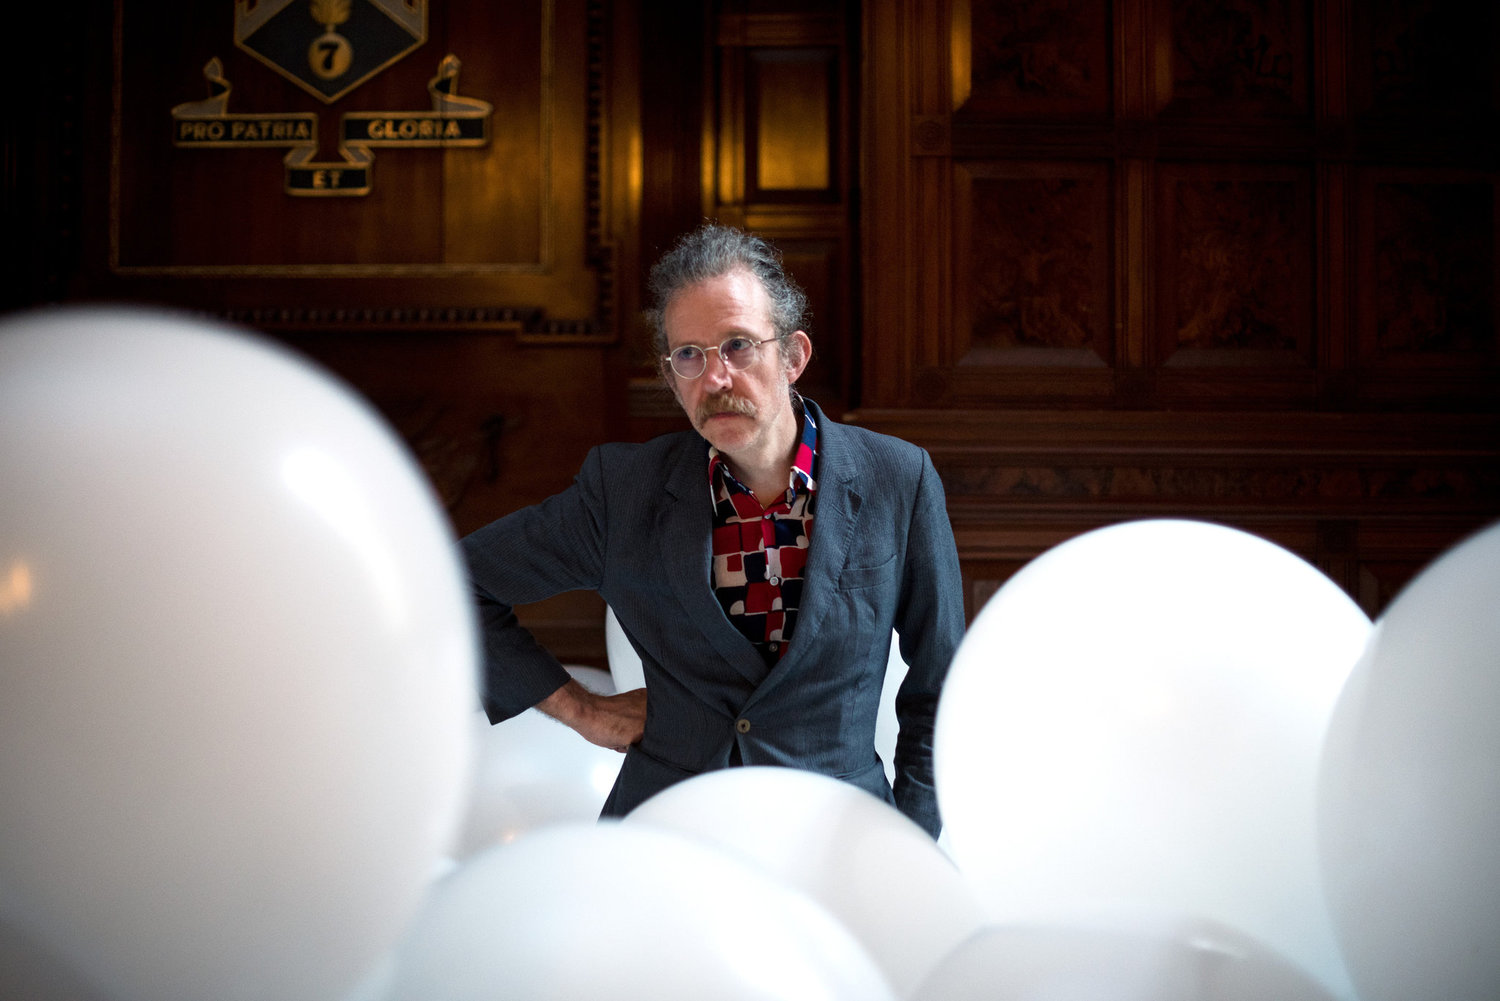 The artist Martin Creed at the Park Avenue Armory where his retrospective exhibition has been installed.